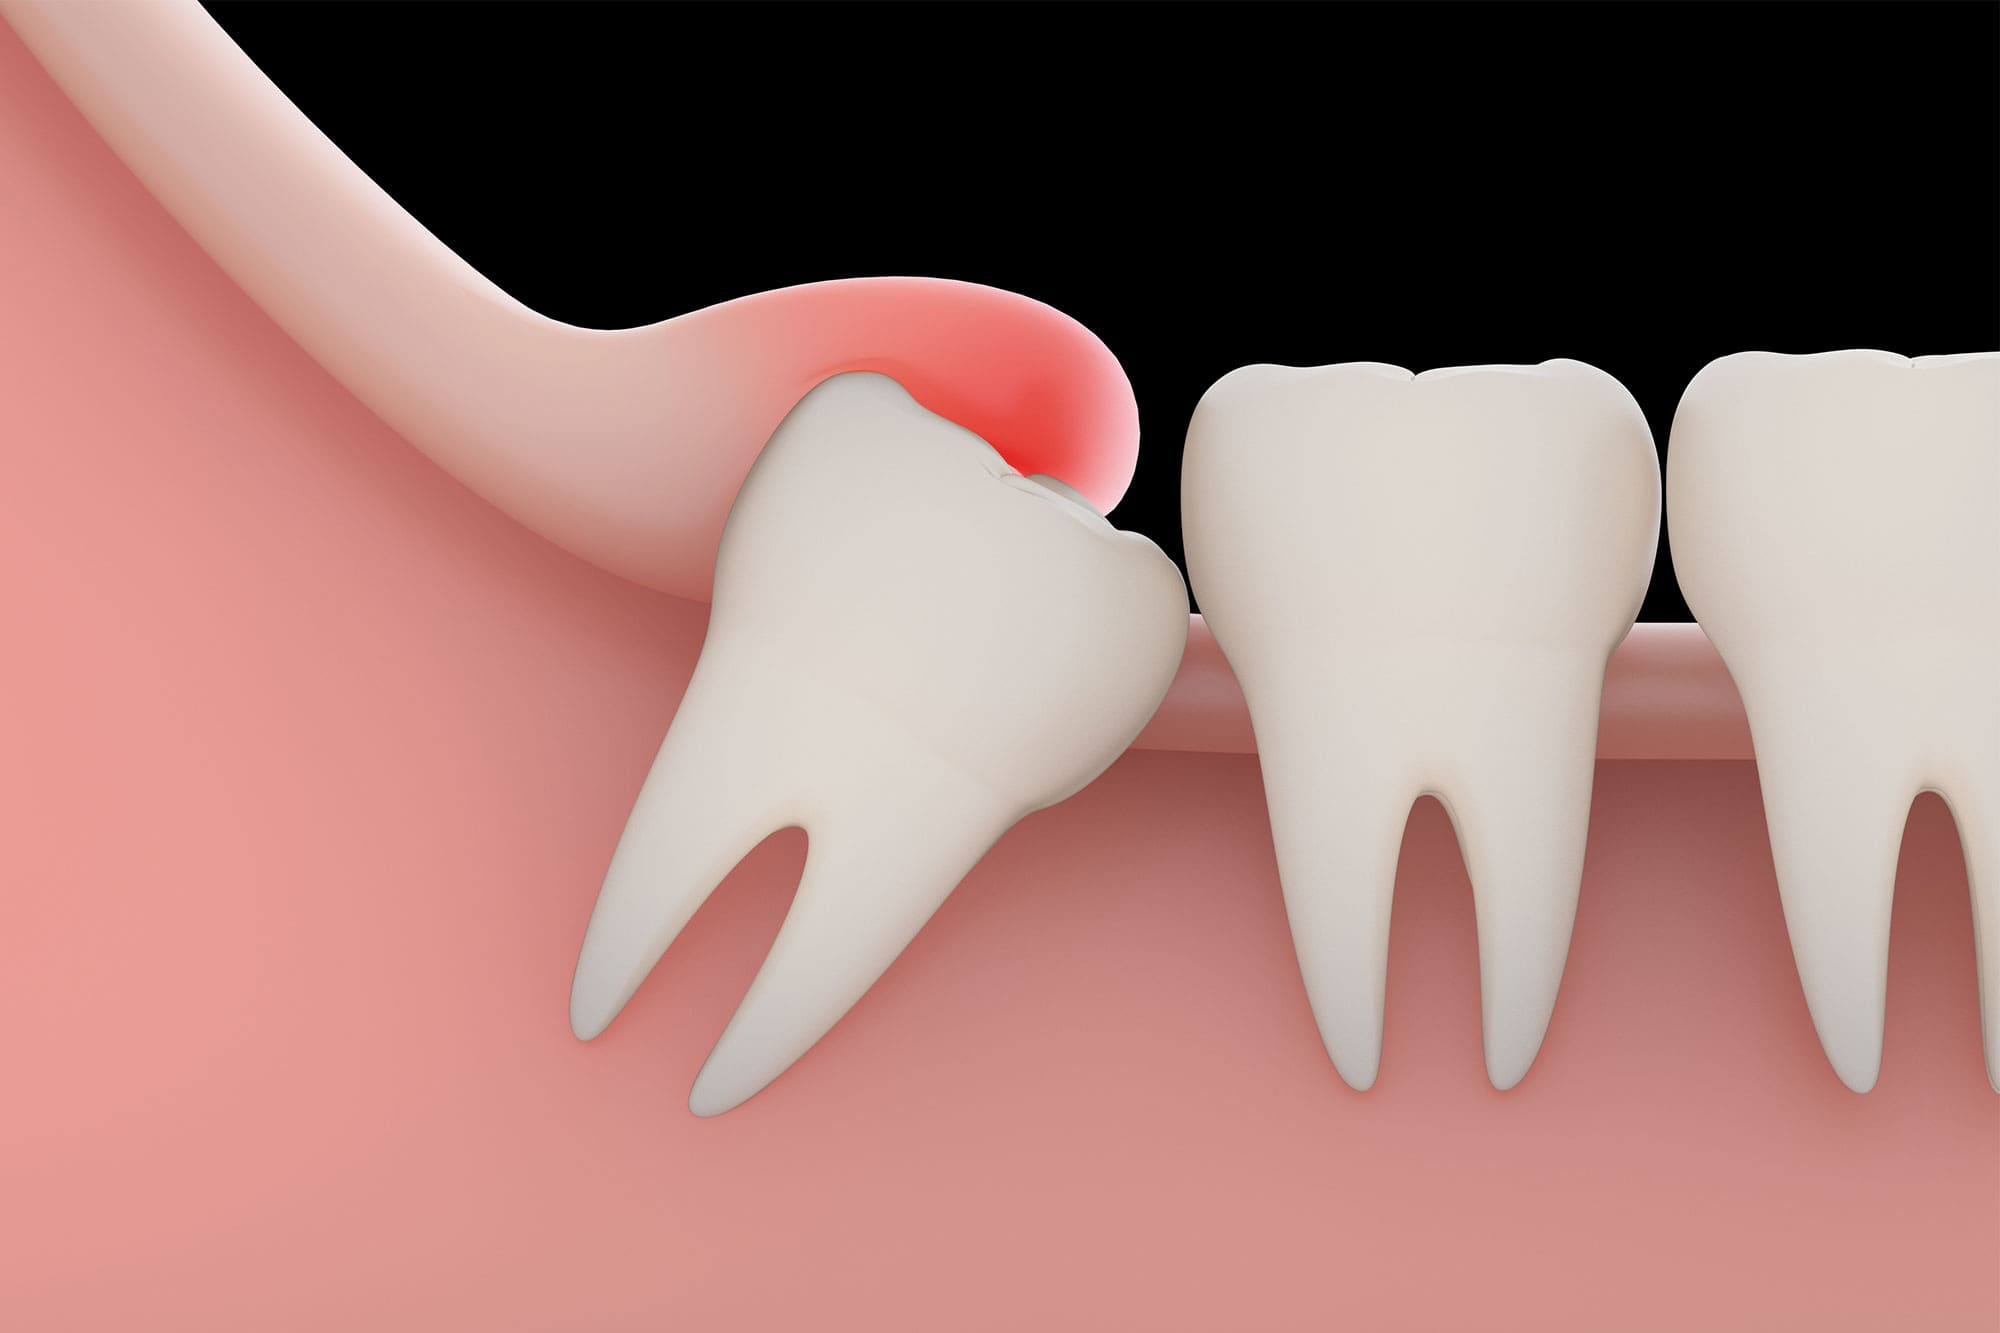 Do Wisdom Teeth Always Need To Be Removed?